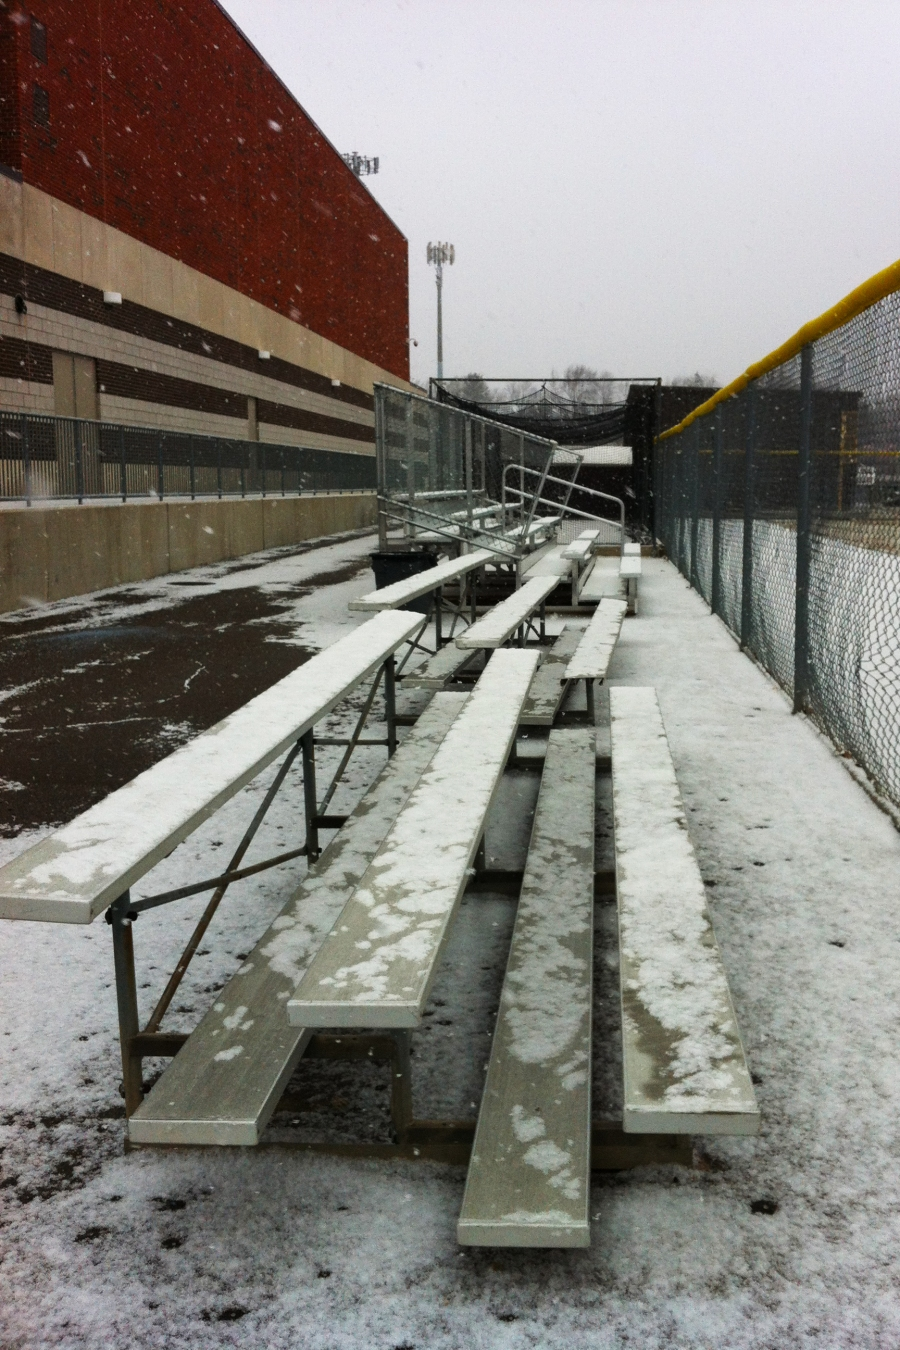 Snow settles on Seaholm's softball bleachers March 19. Cold temperatures have remained in Metro-Detroit since late 2012.  PHOTO / CAROLINE SQUATRITO